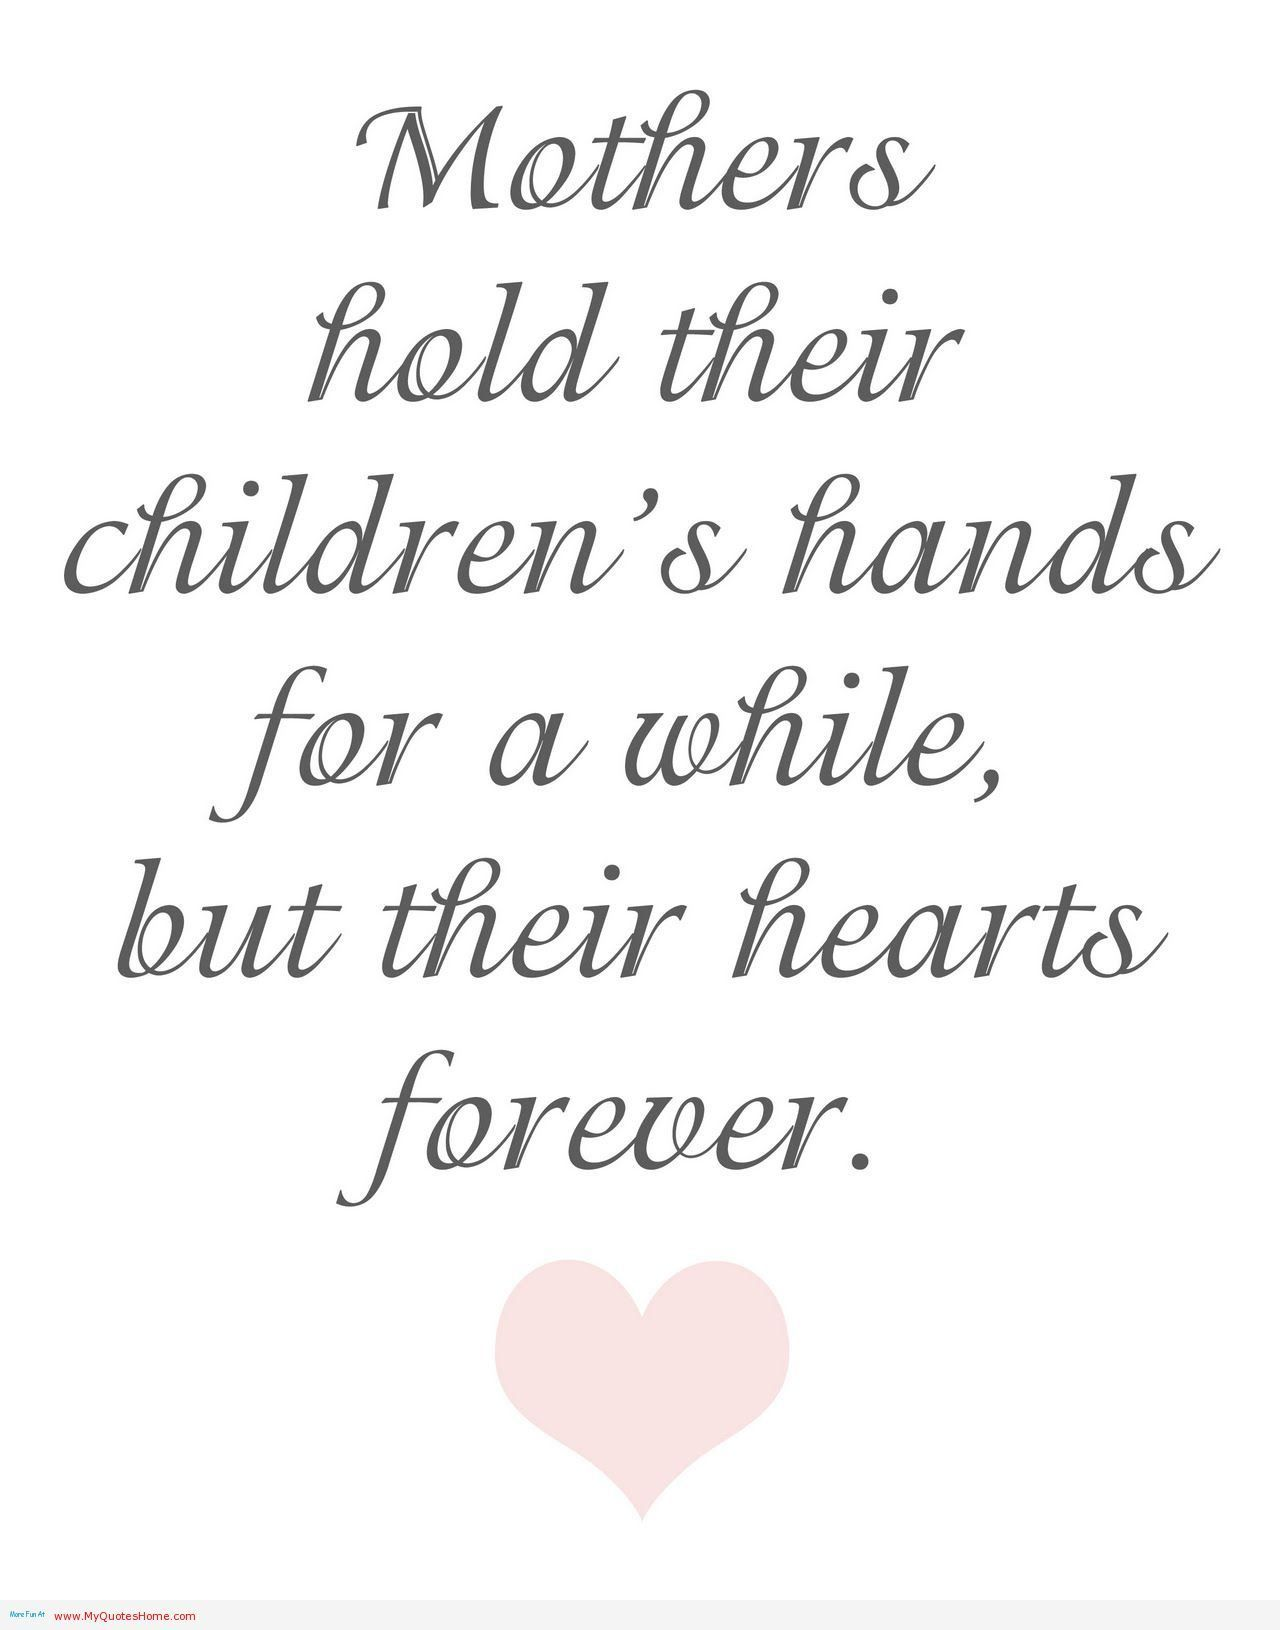 Valentine Day Quotes Coupons For Mom Mothers Day 2014. Mothers